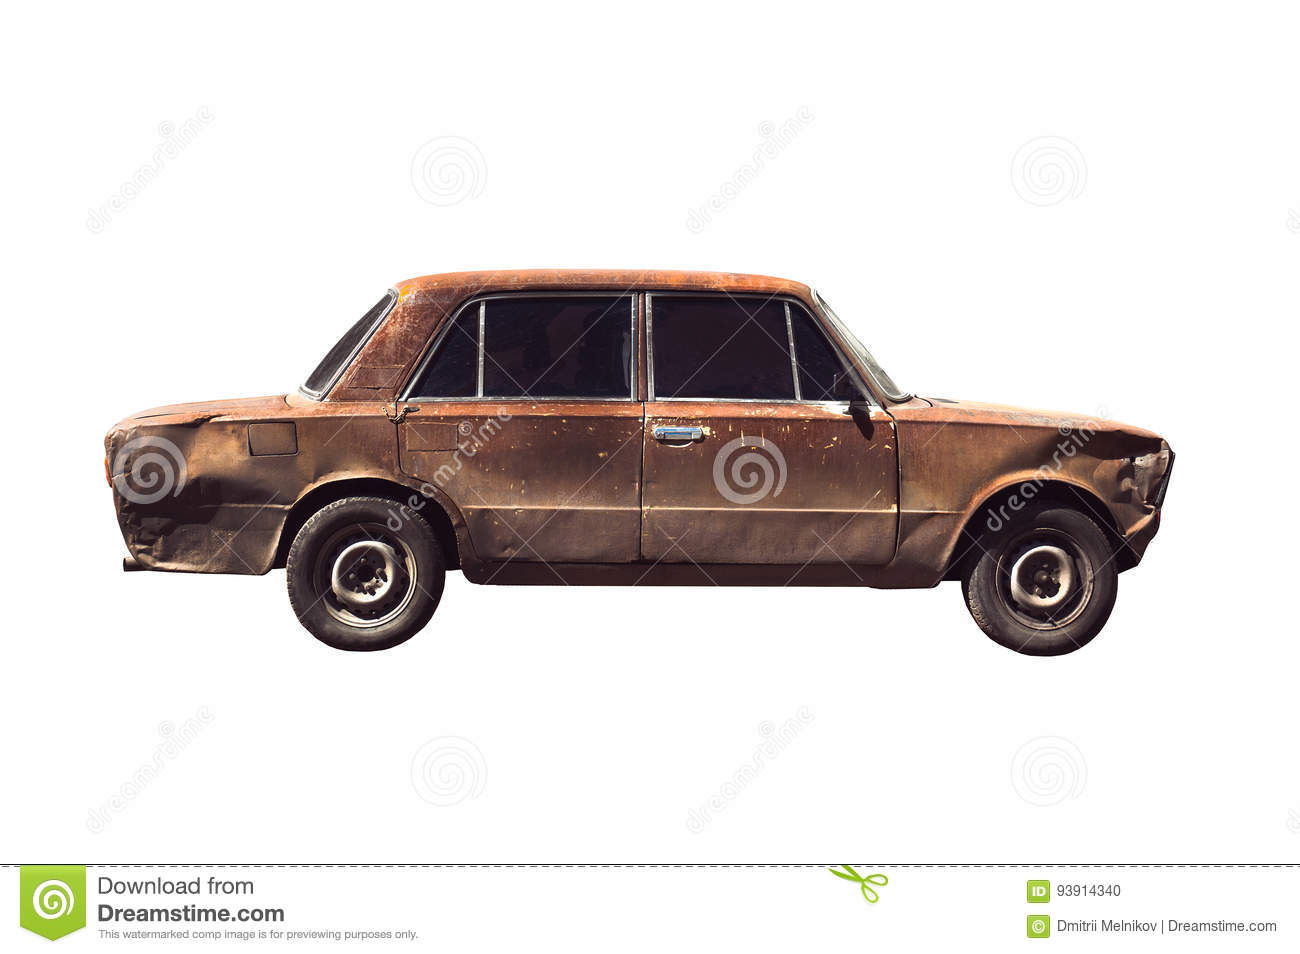 Download Old rusted torched car stock photo. Image of auto, junkyard - 93914340